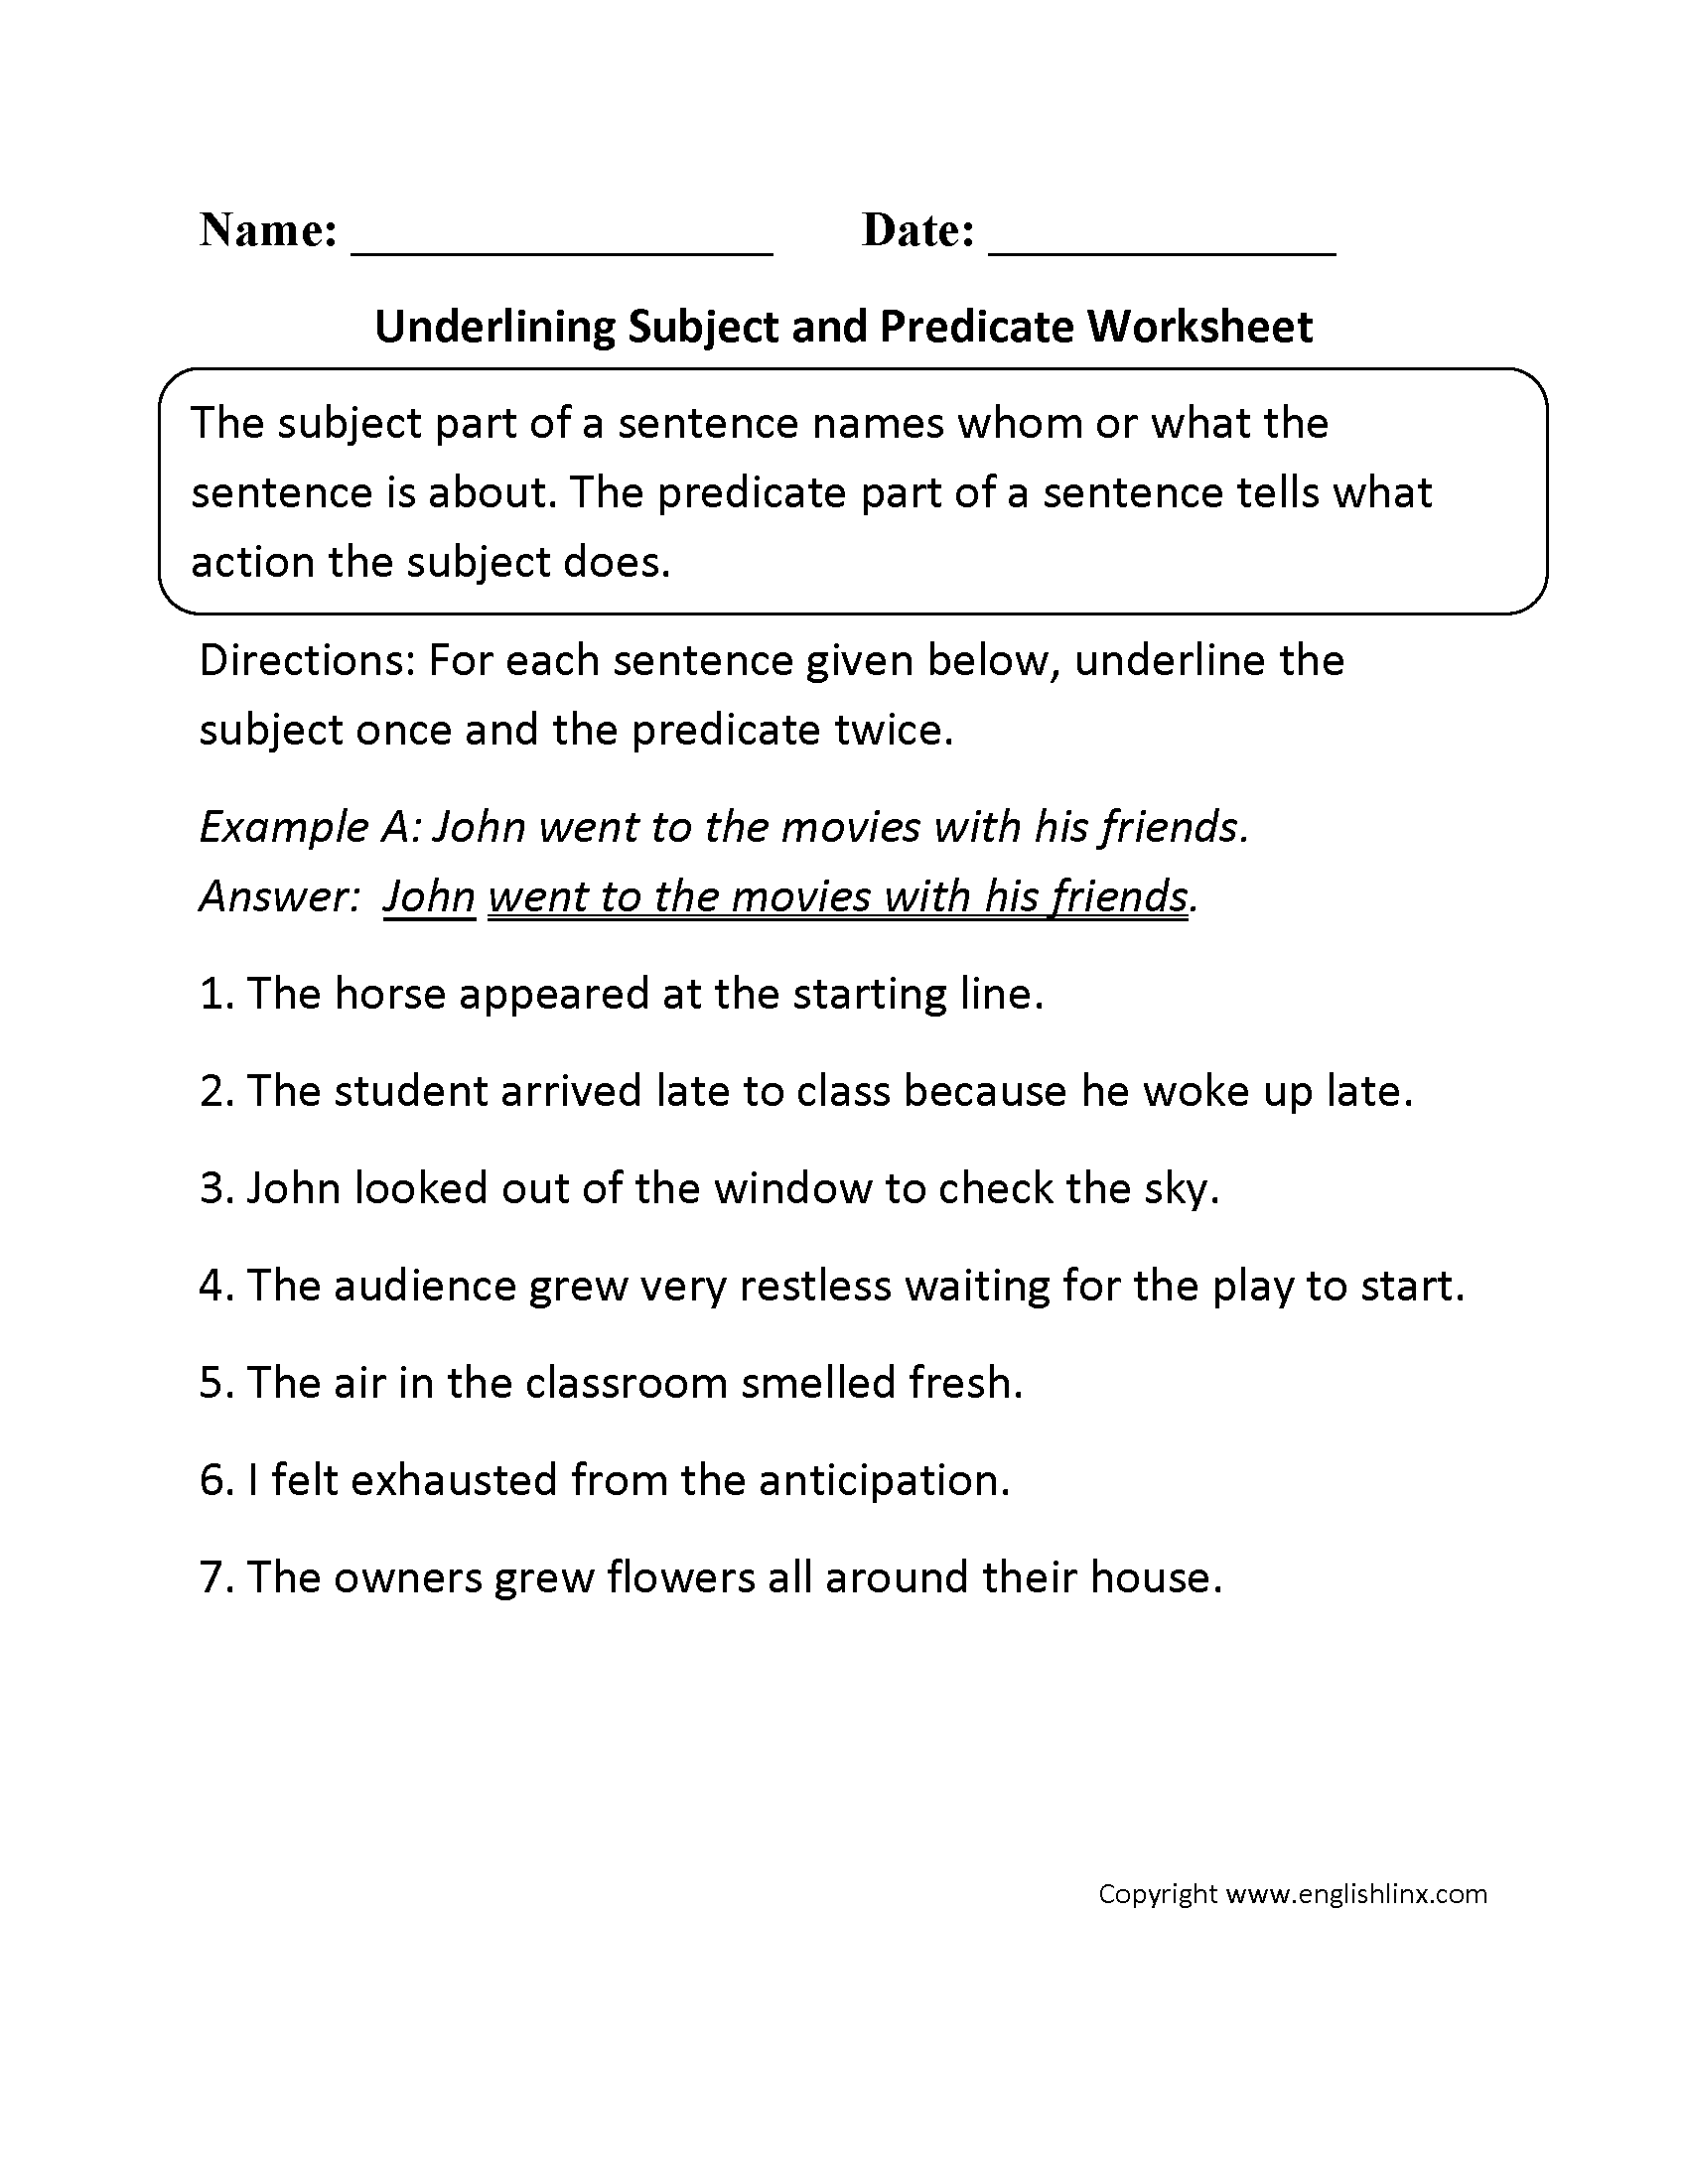 Subject And Predicate Worksheets Middle School   Printable Worksheets and  Activities for Teachers [ 2200 x 1700 Pixel ]